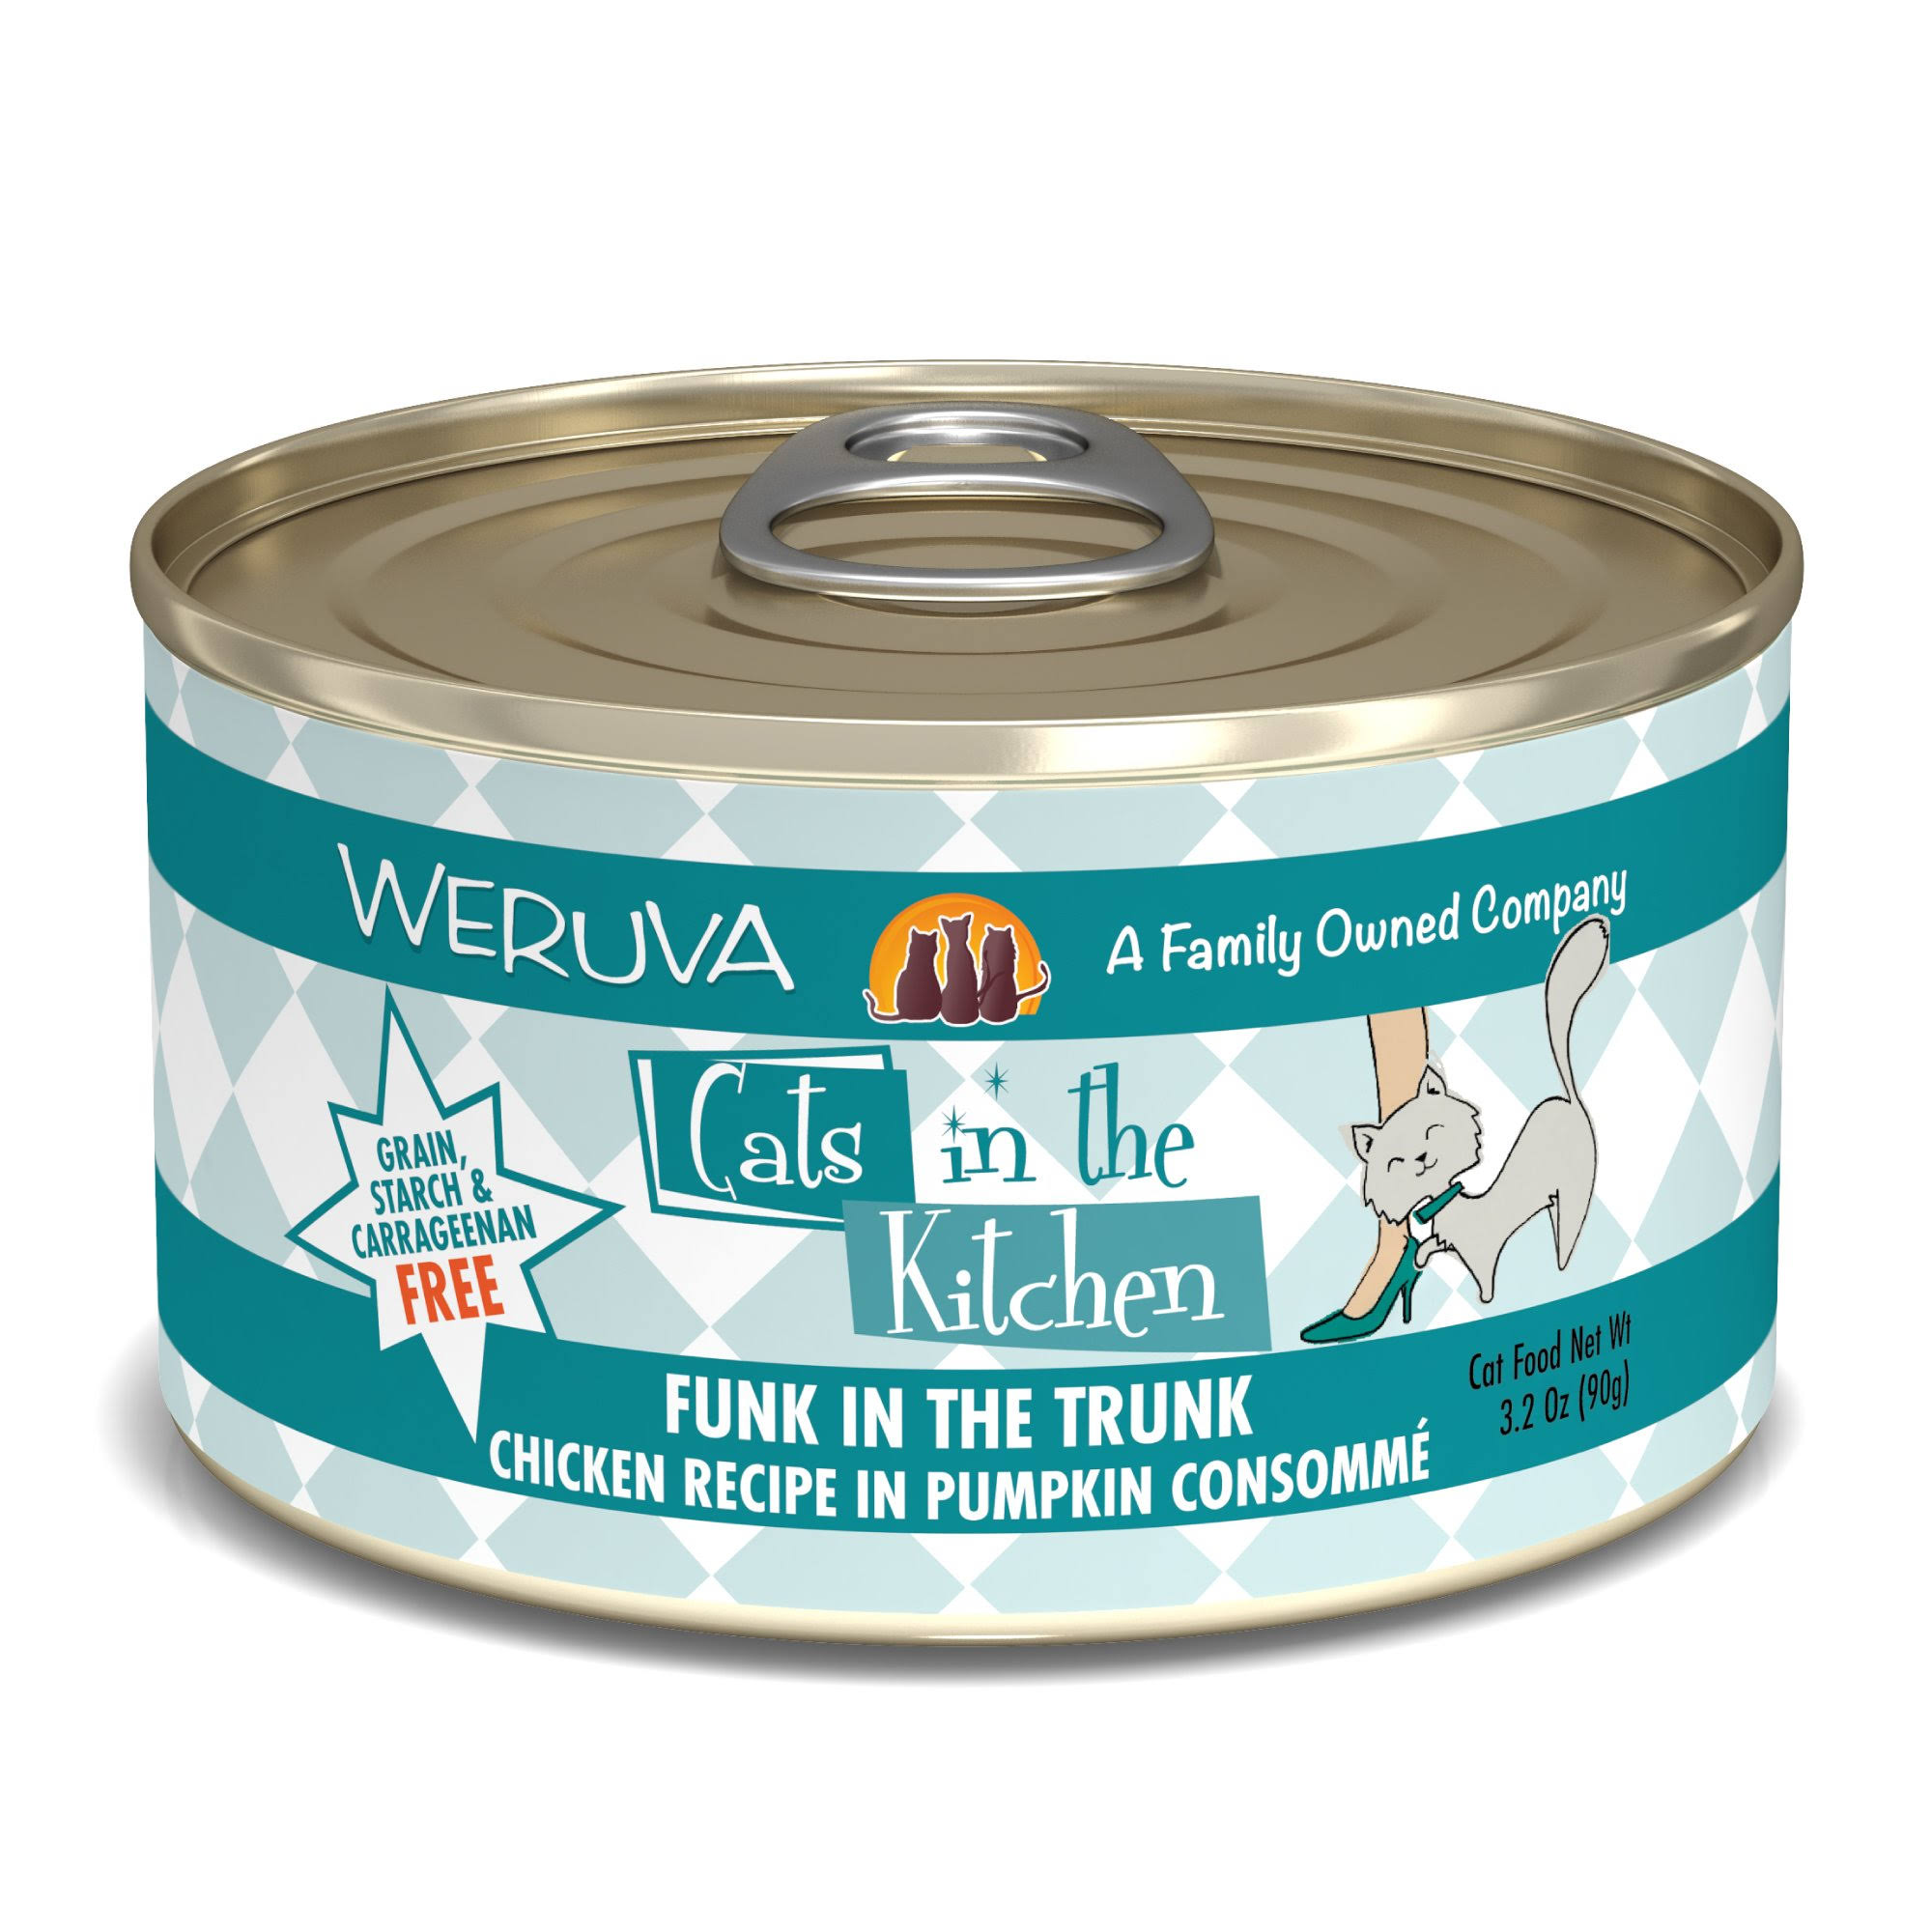 Weruva Cats in The Kitchen Funk in The Trunk - 3.2 oz.